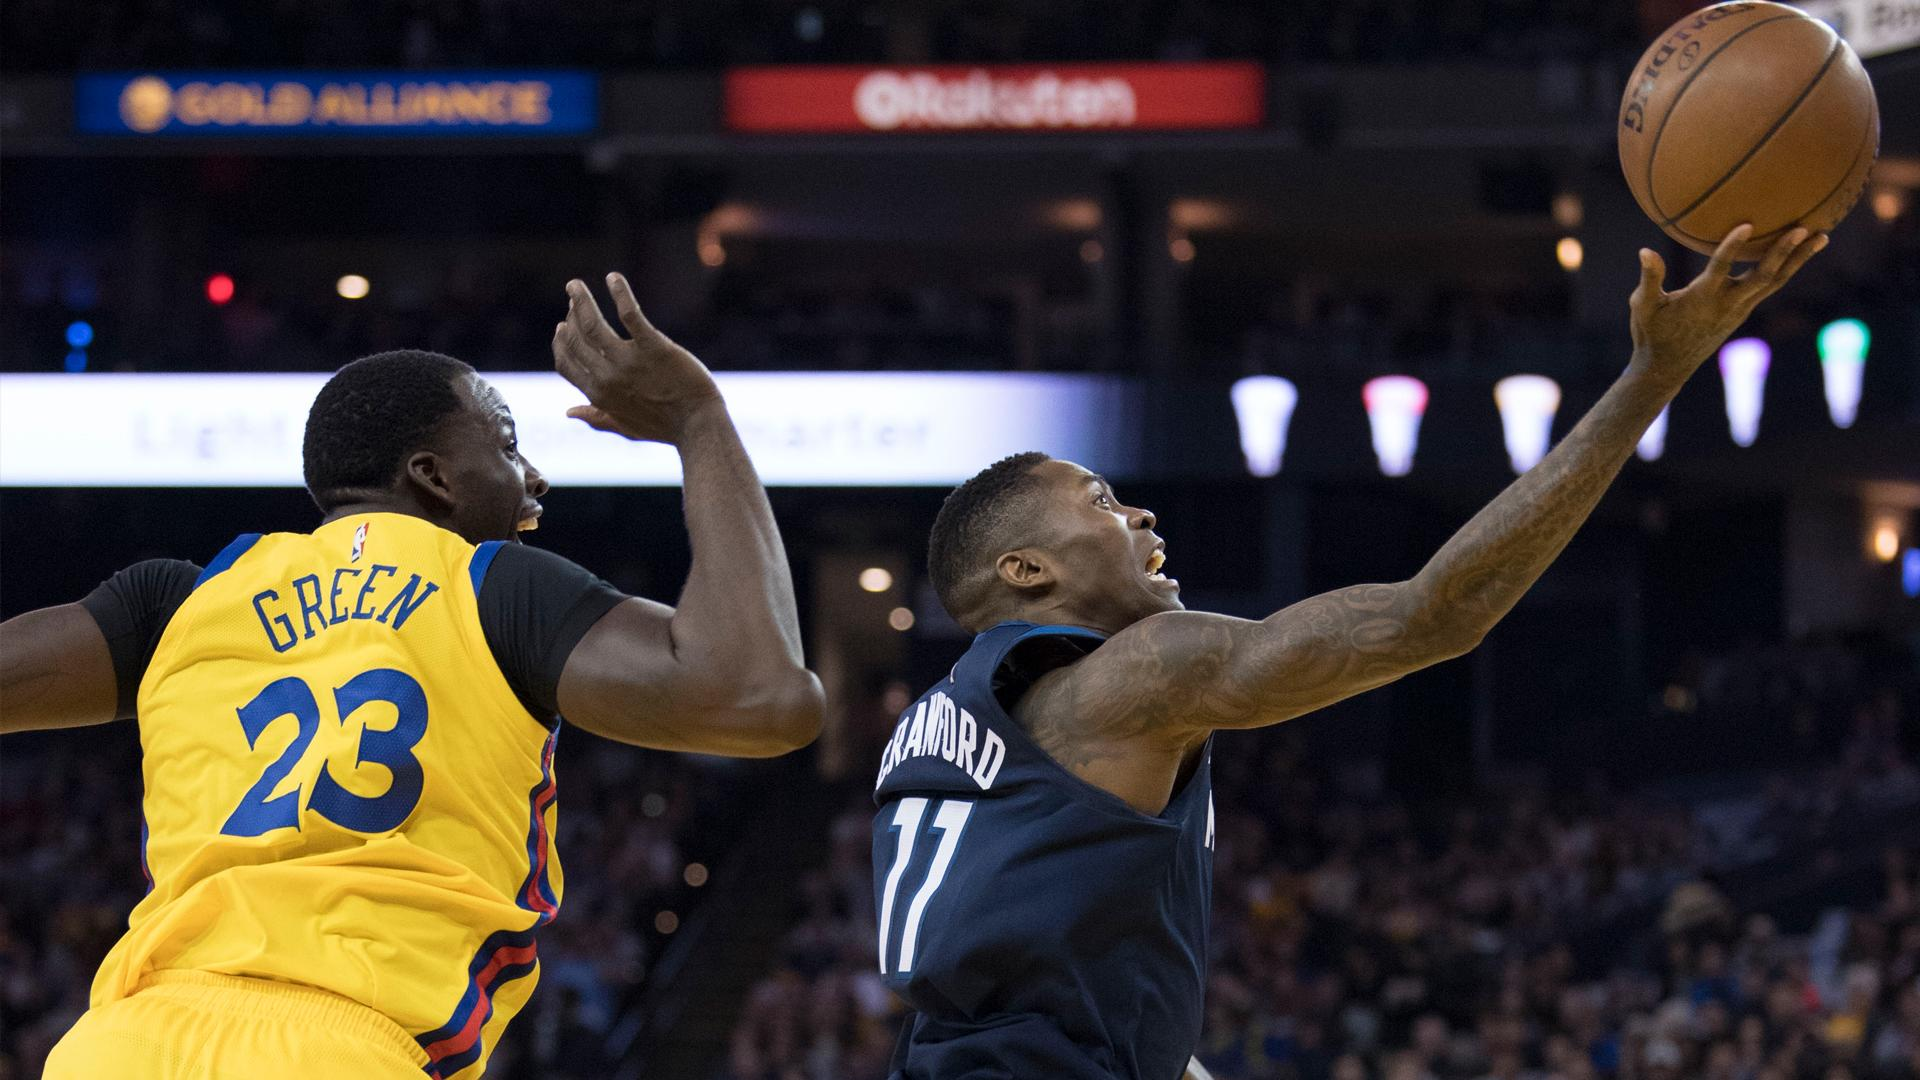 Report: Veteran guard Jamal Crawford agrees to deal with Suns